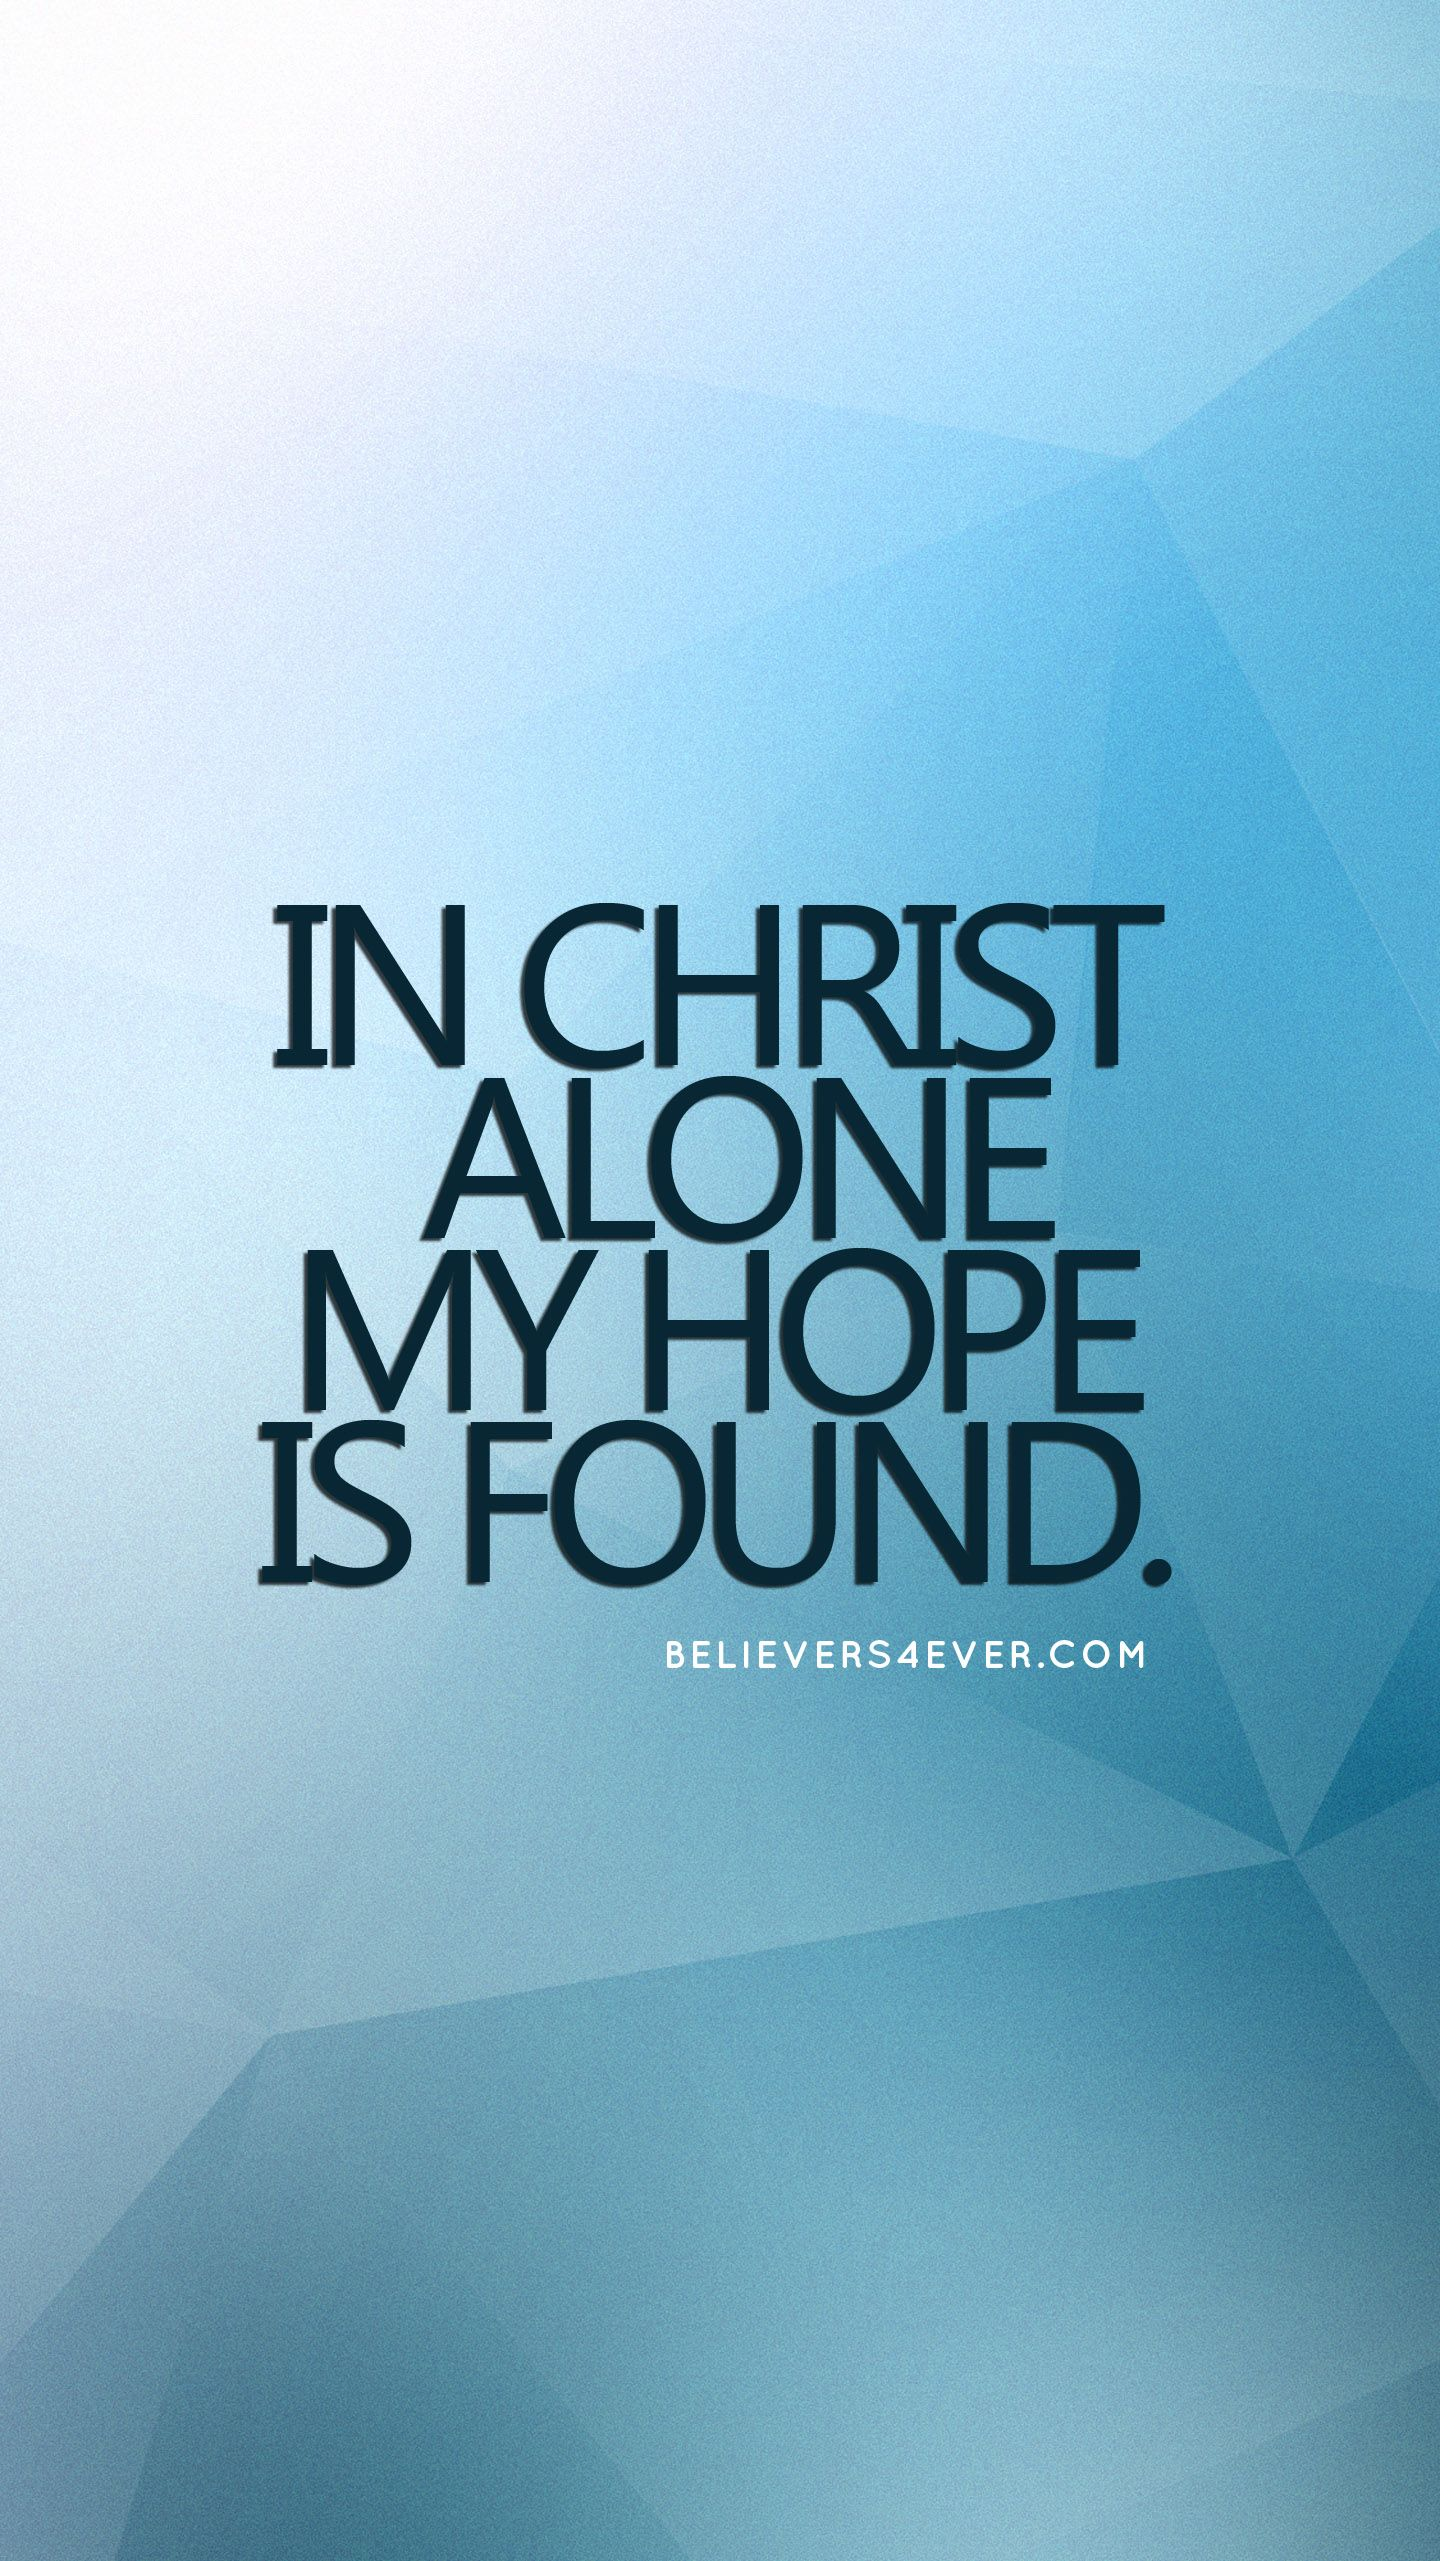 In christ alone mobile wallpaper wallpaper backgrounds and samsung in christ alone my hope is found free mobile wallpaper background download free mobile wallpaper for your android and iphone samsung note 8 wallpaper voltagebd